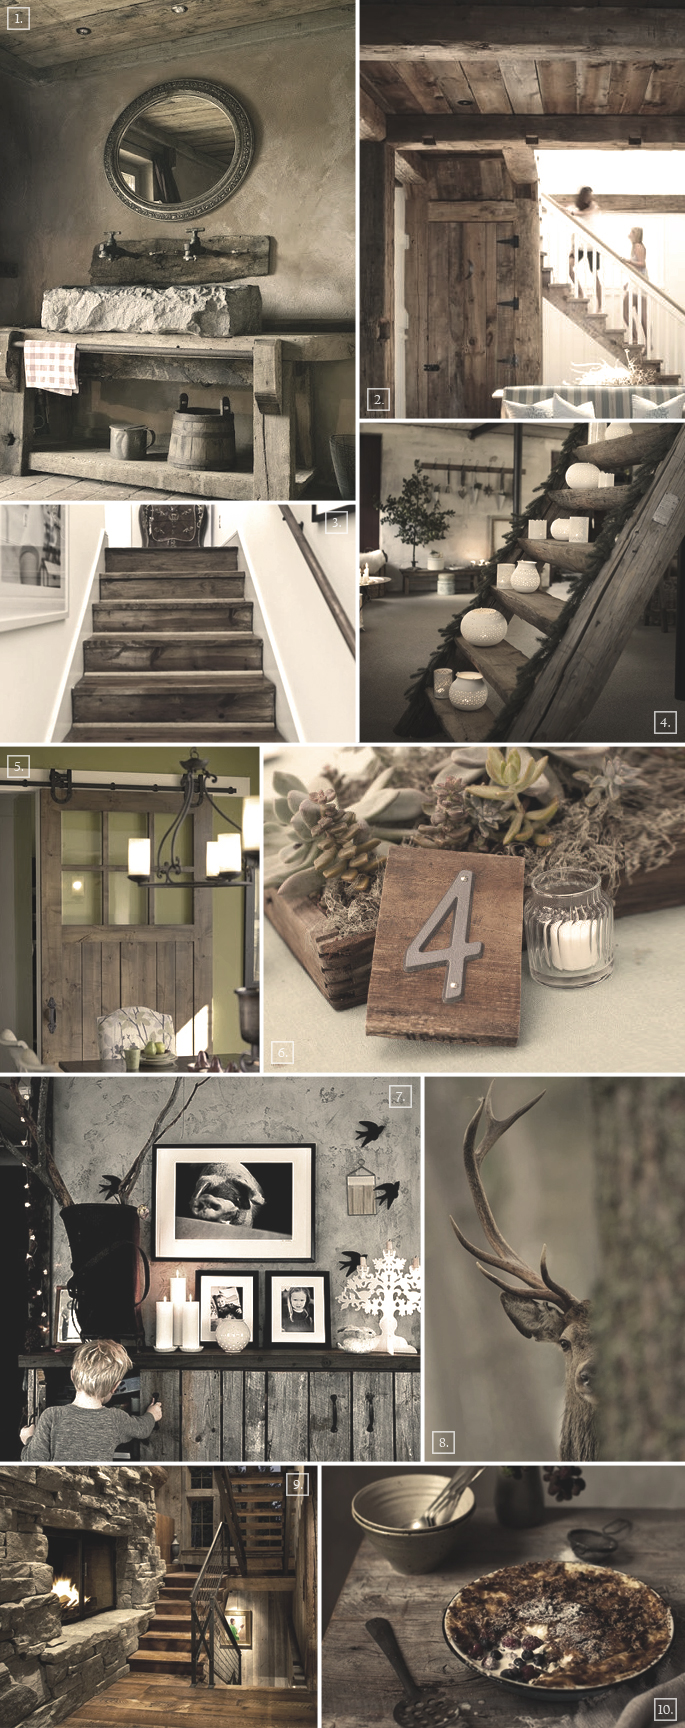 Rustic decor ideas for a basement home tree atlas for Rustic decor ideas